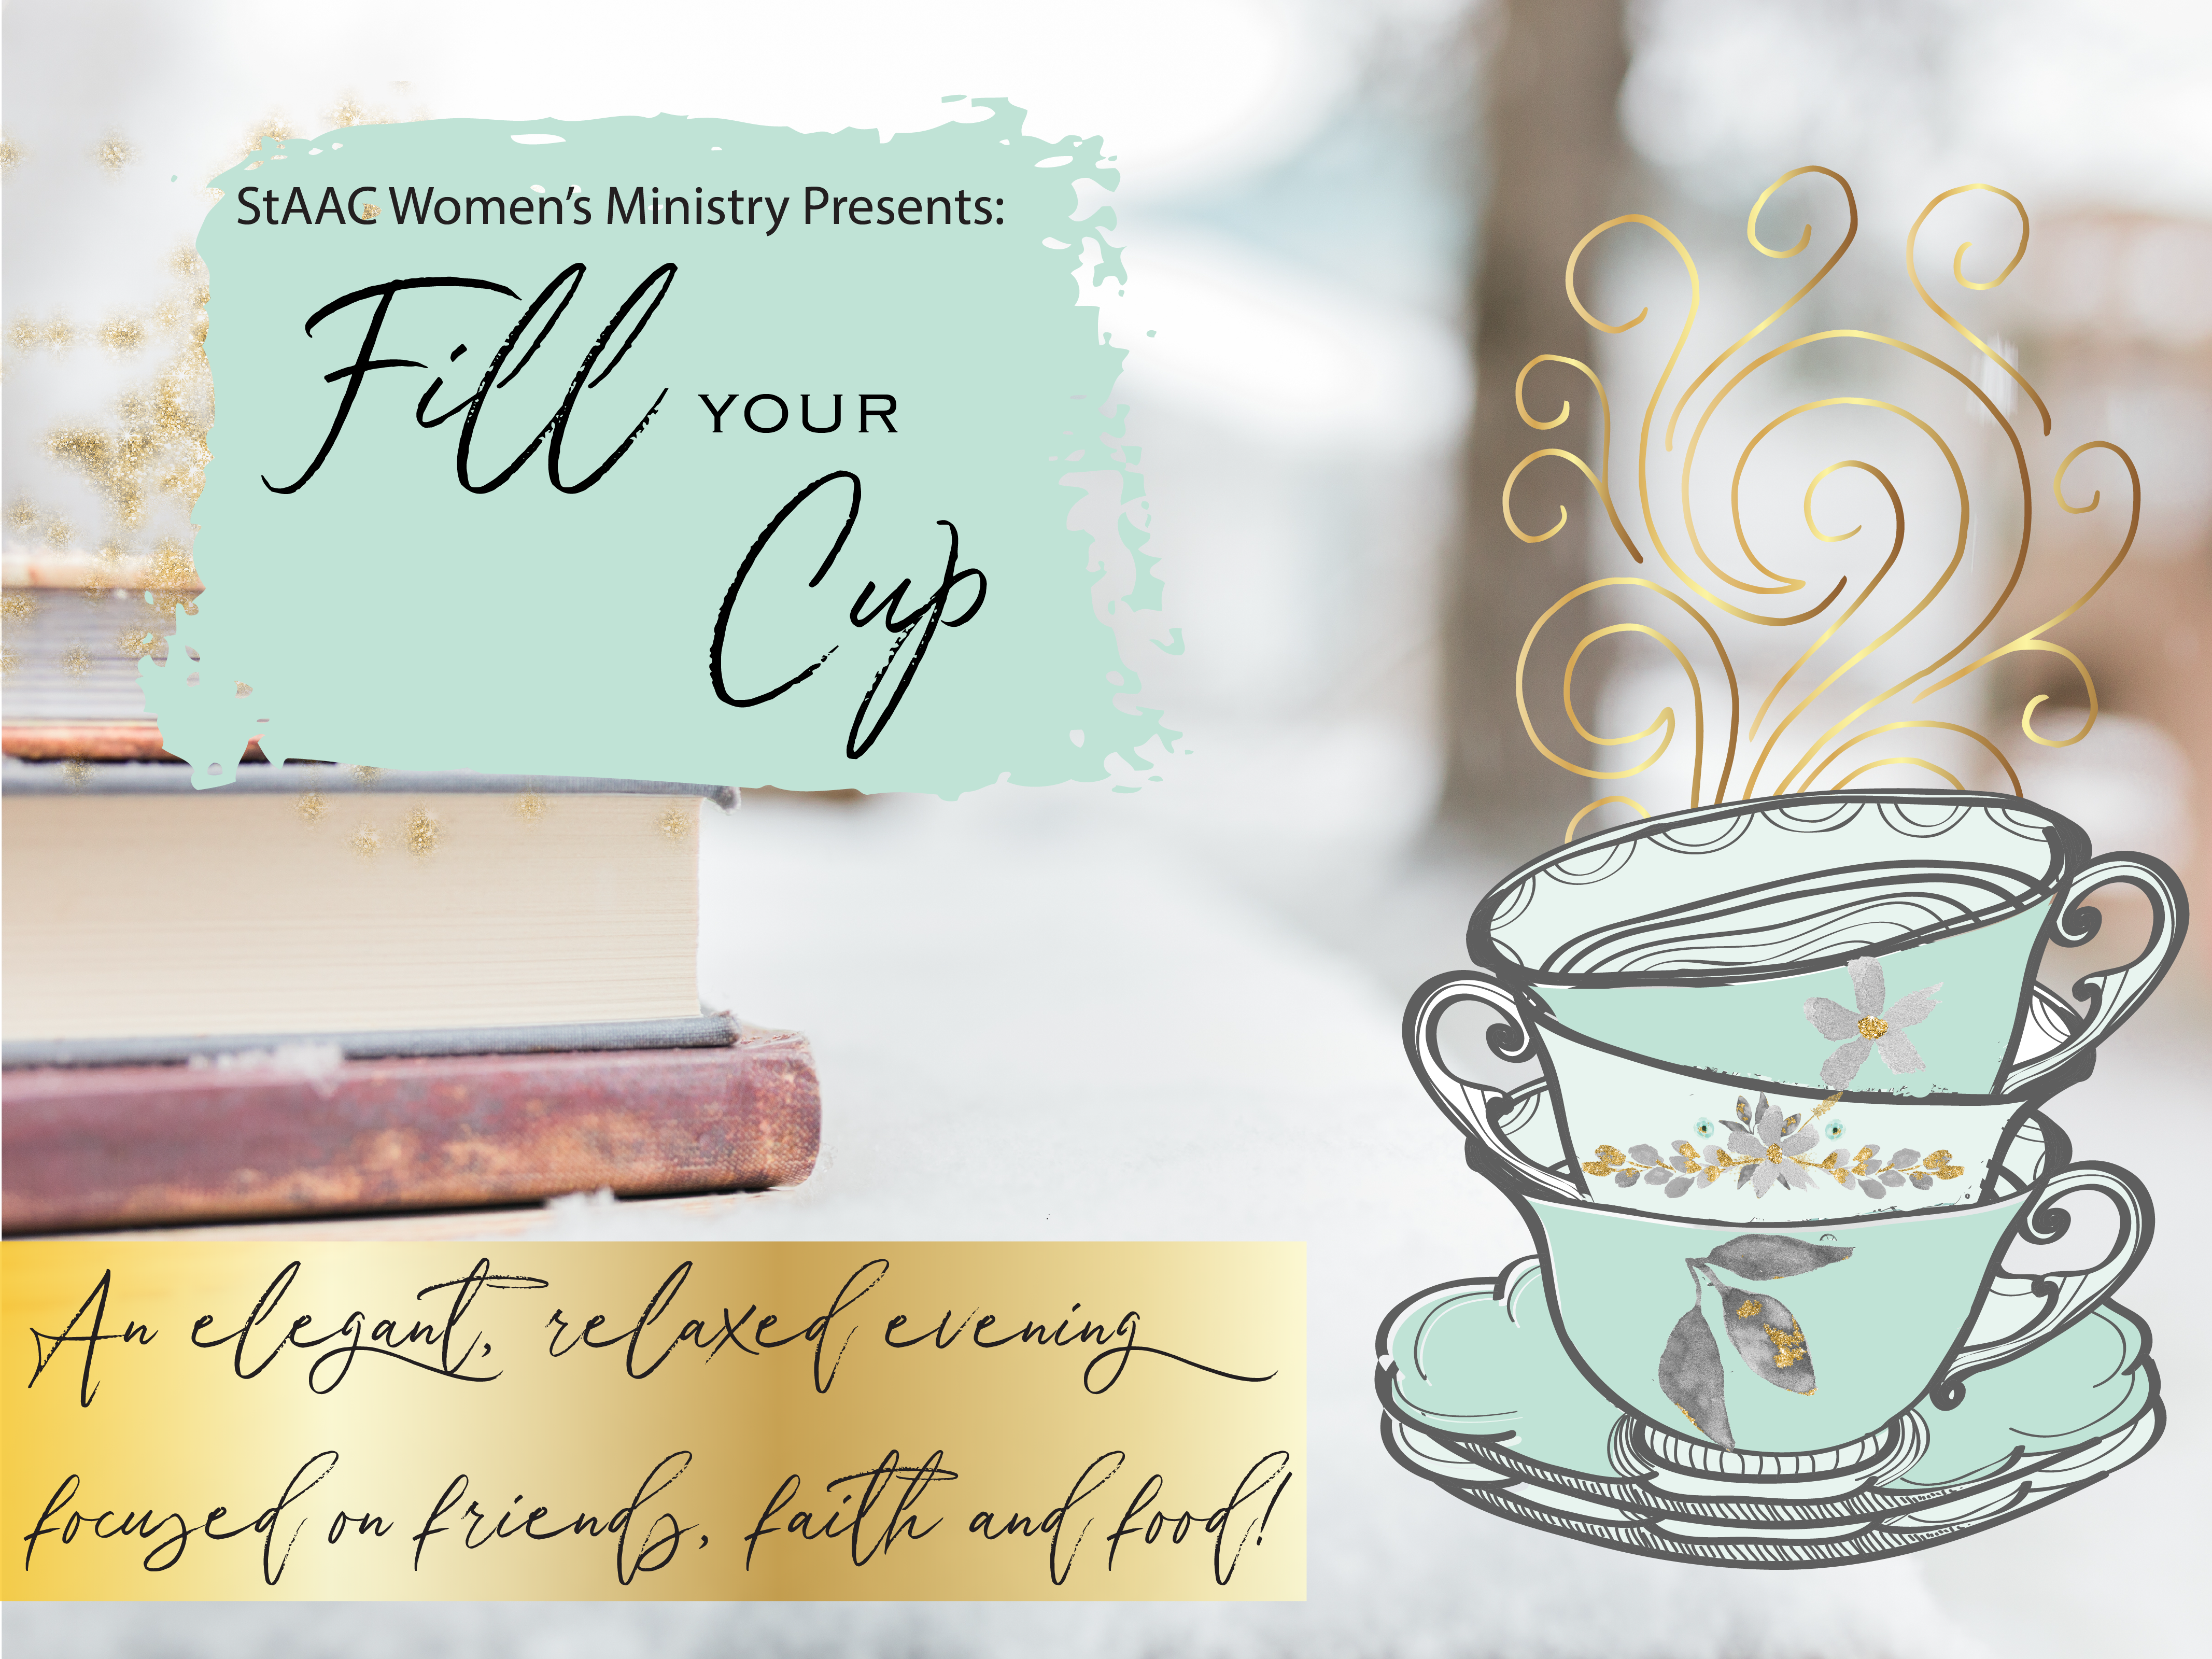 Fillyourcup2018pco image 01